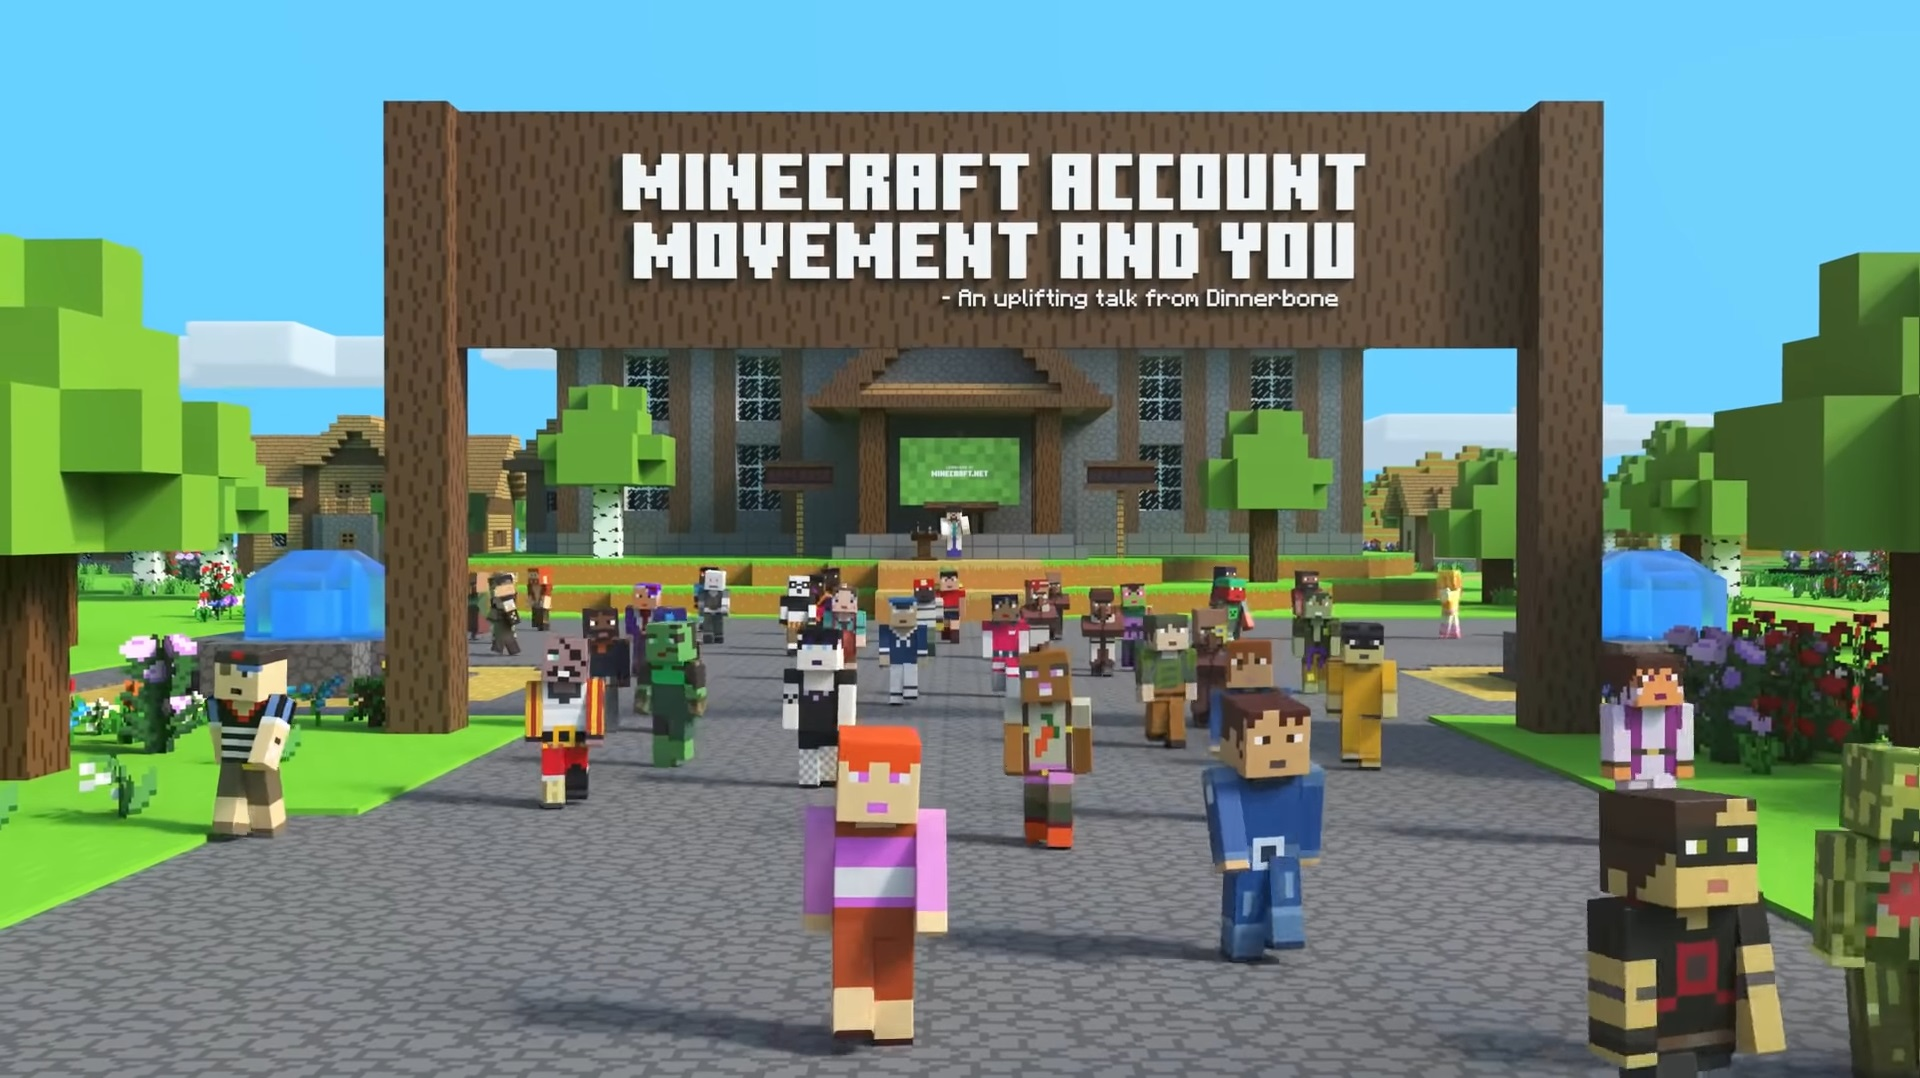 Minecraft Java Edition will require a Microsoft account starting